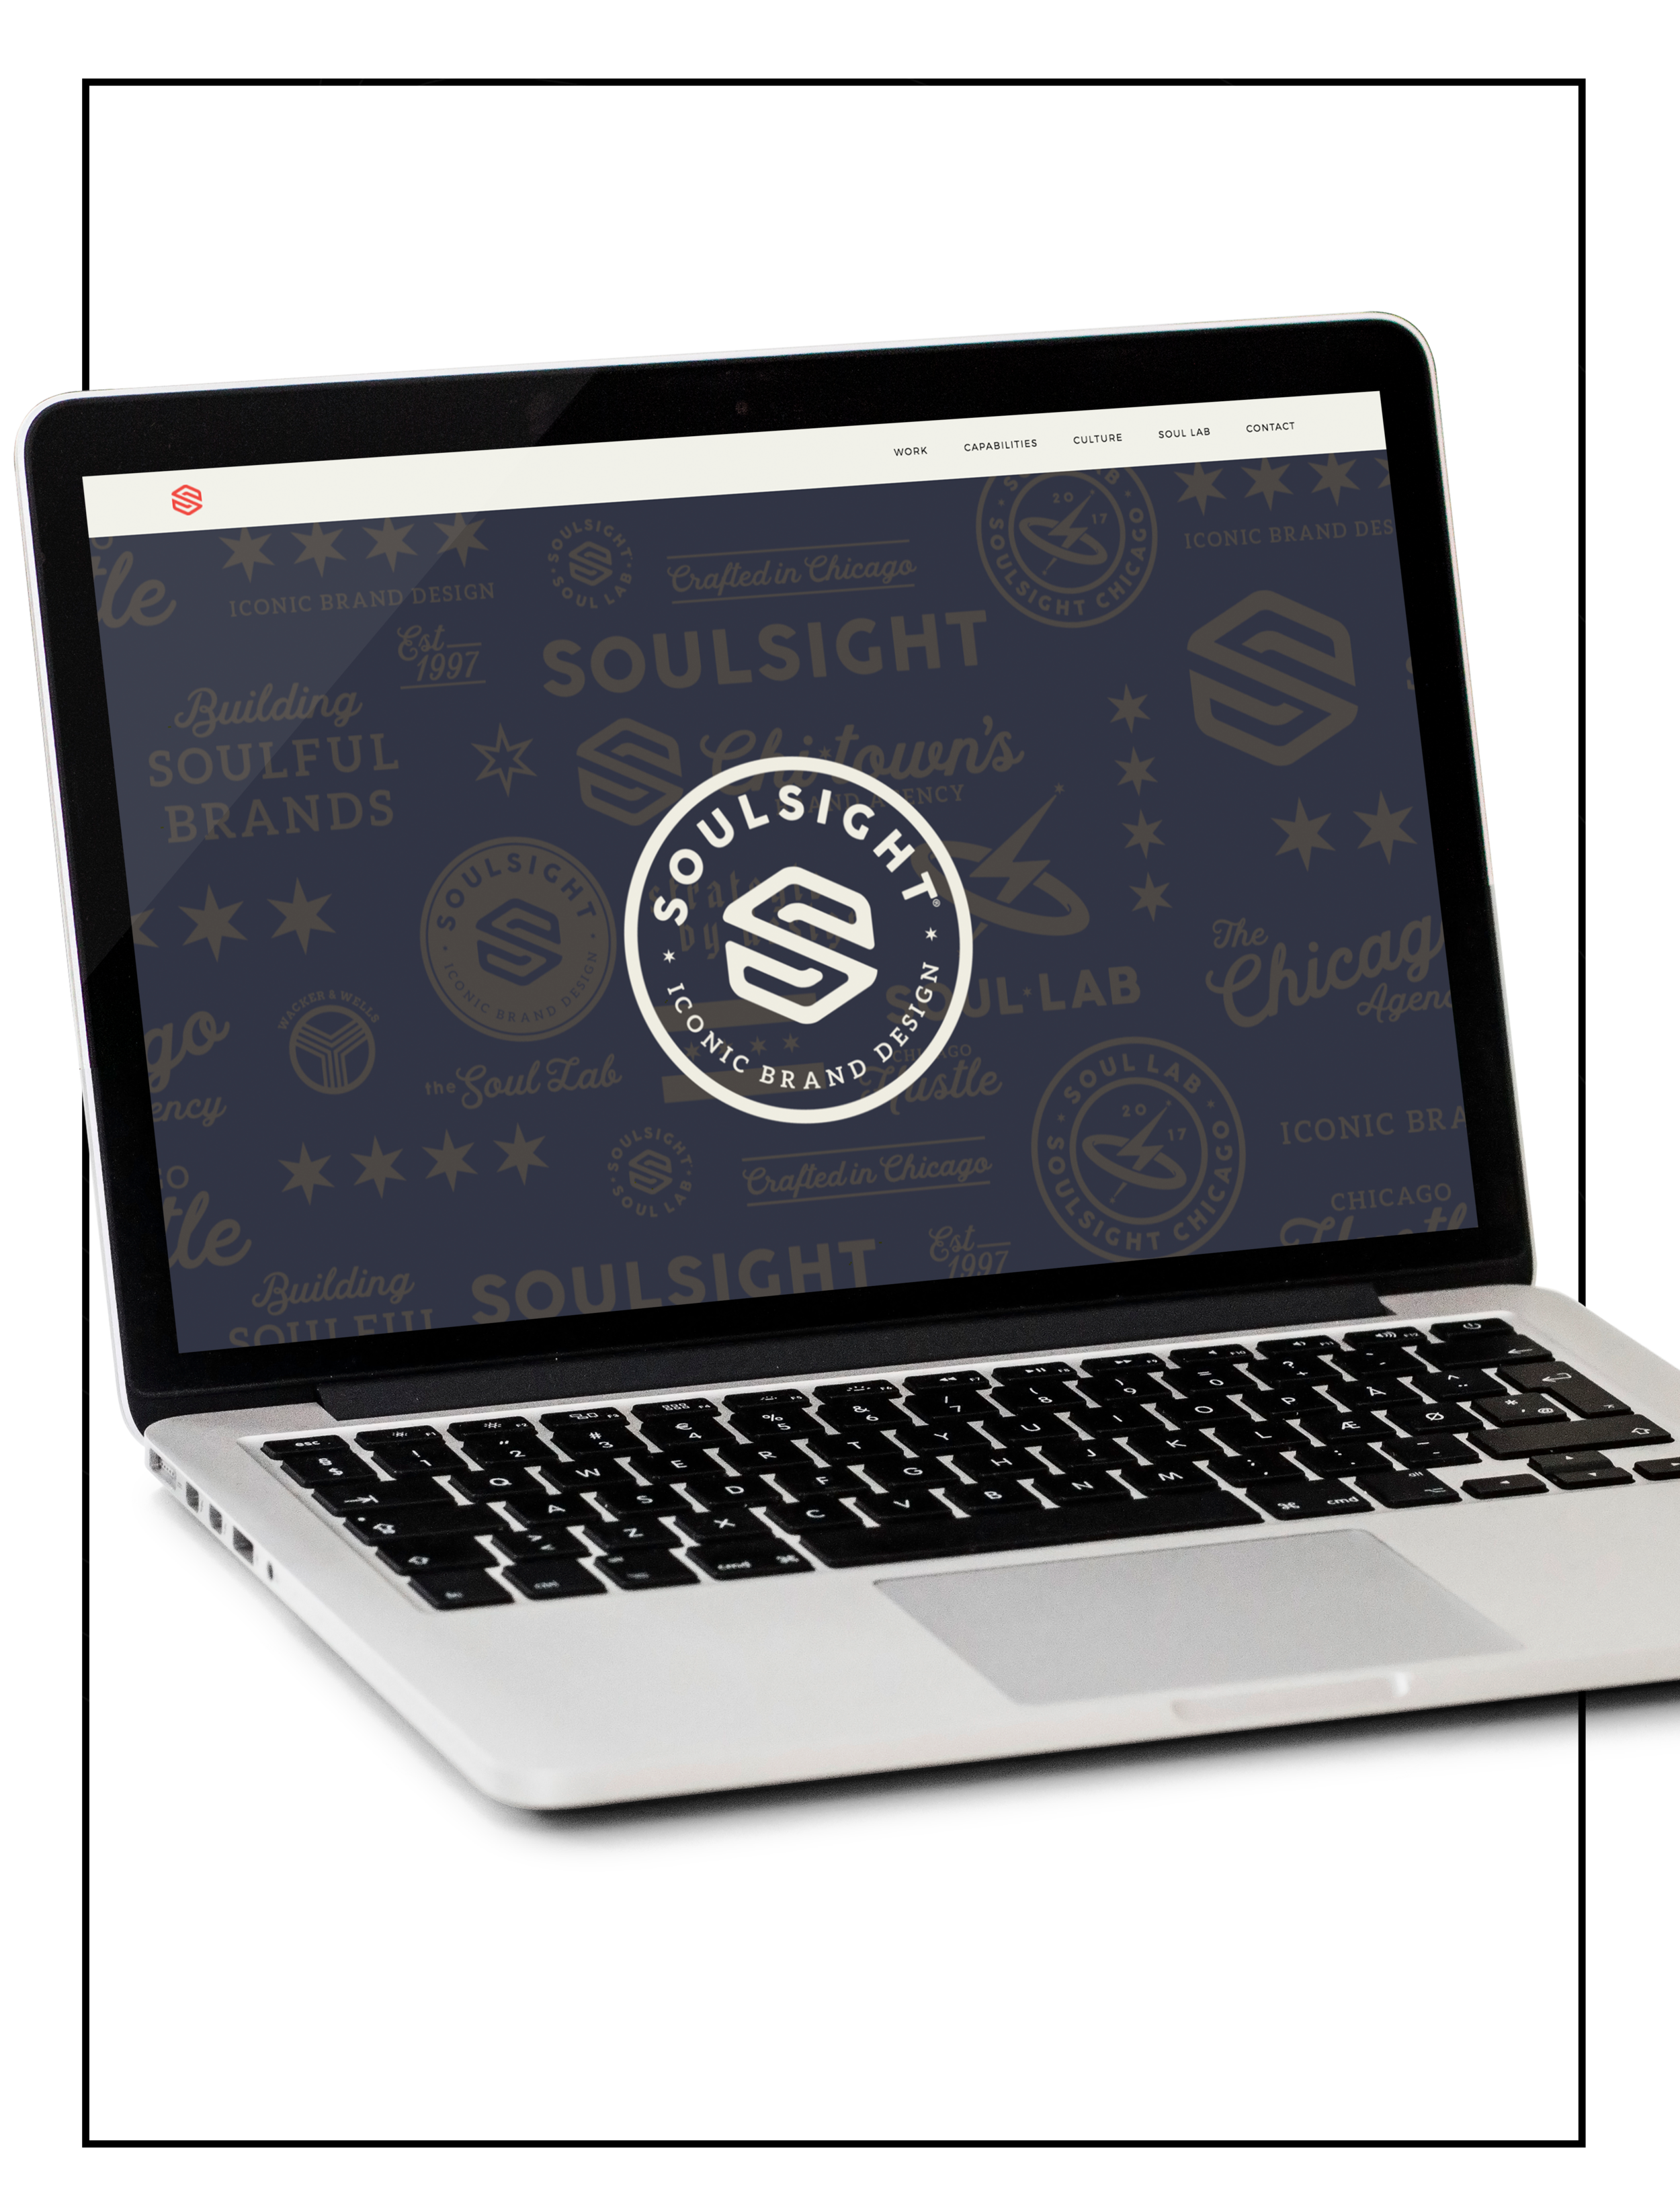 Showcasing an image of a laptop with a website build of Spacebar Agency - Soulsight Agency